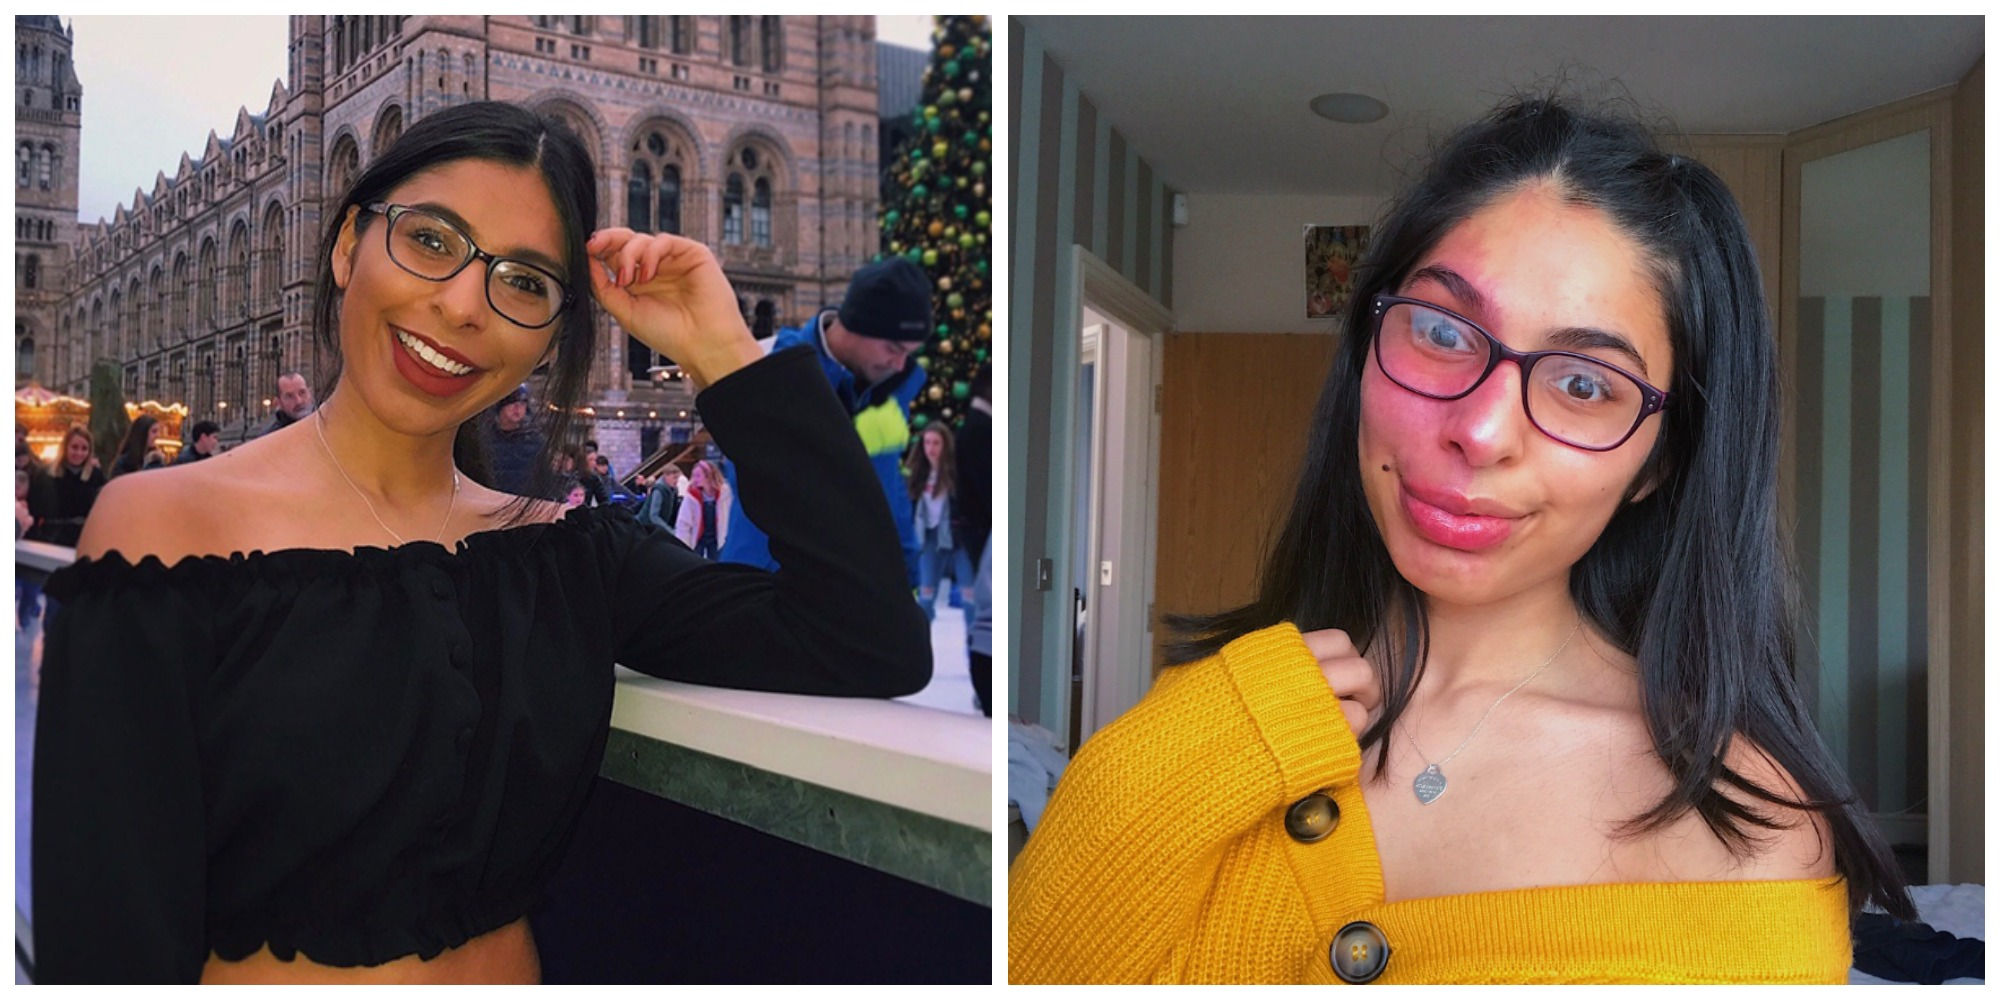 Two images: on the left, a woman in a black top and glasses smiles. She is sitting next to an ice rink. On the left, she wears a yellow cardigan.